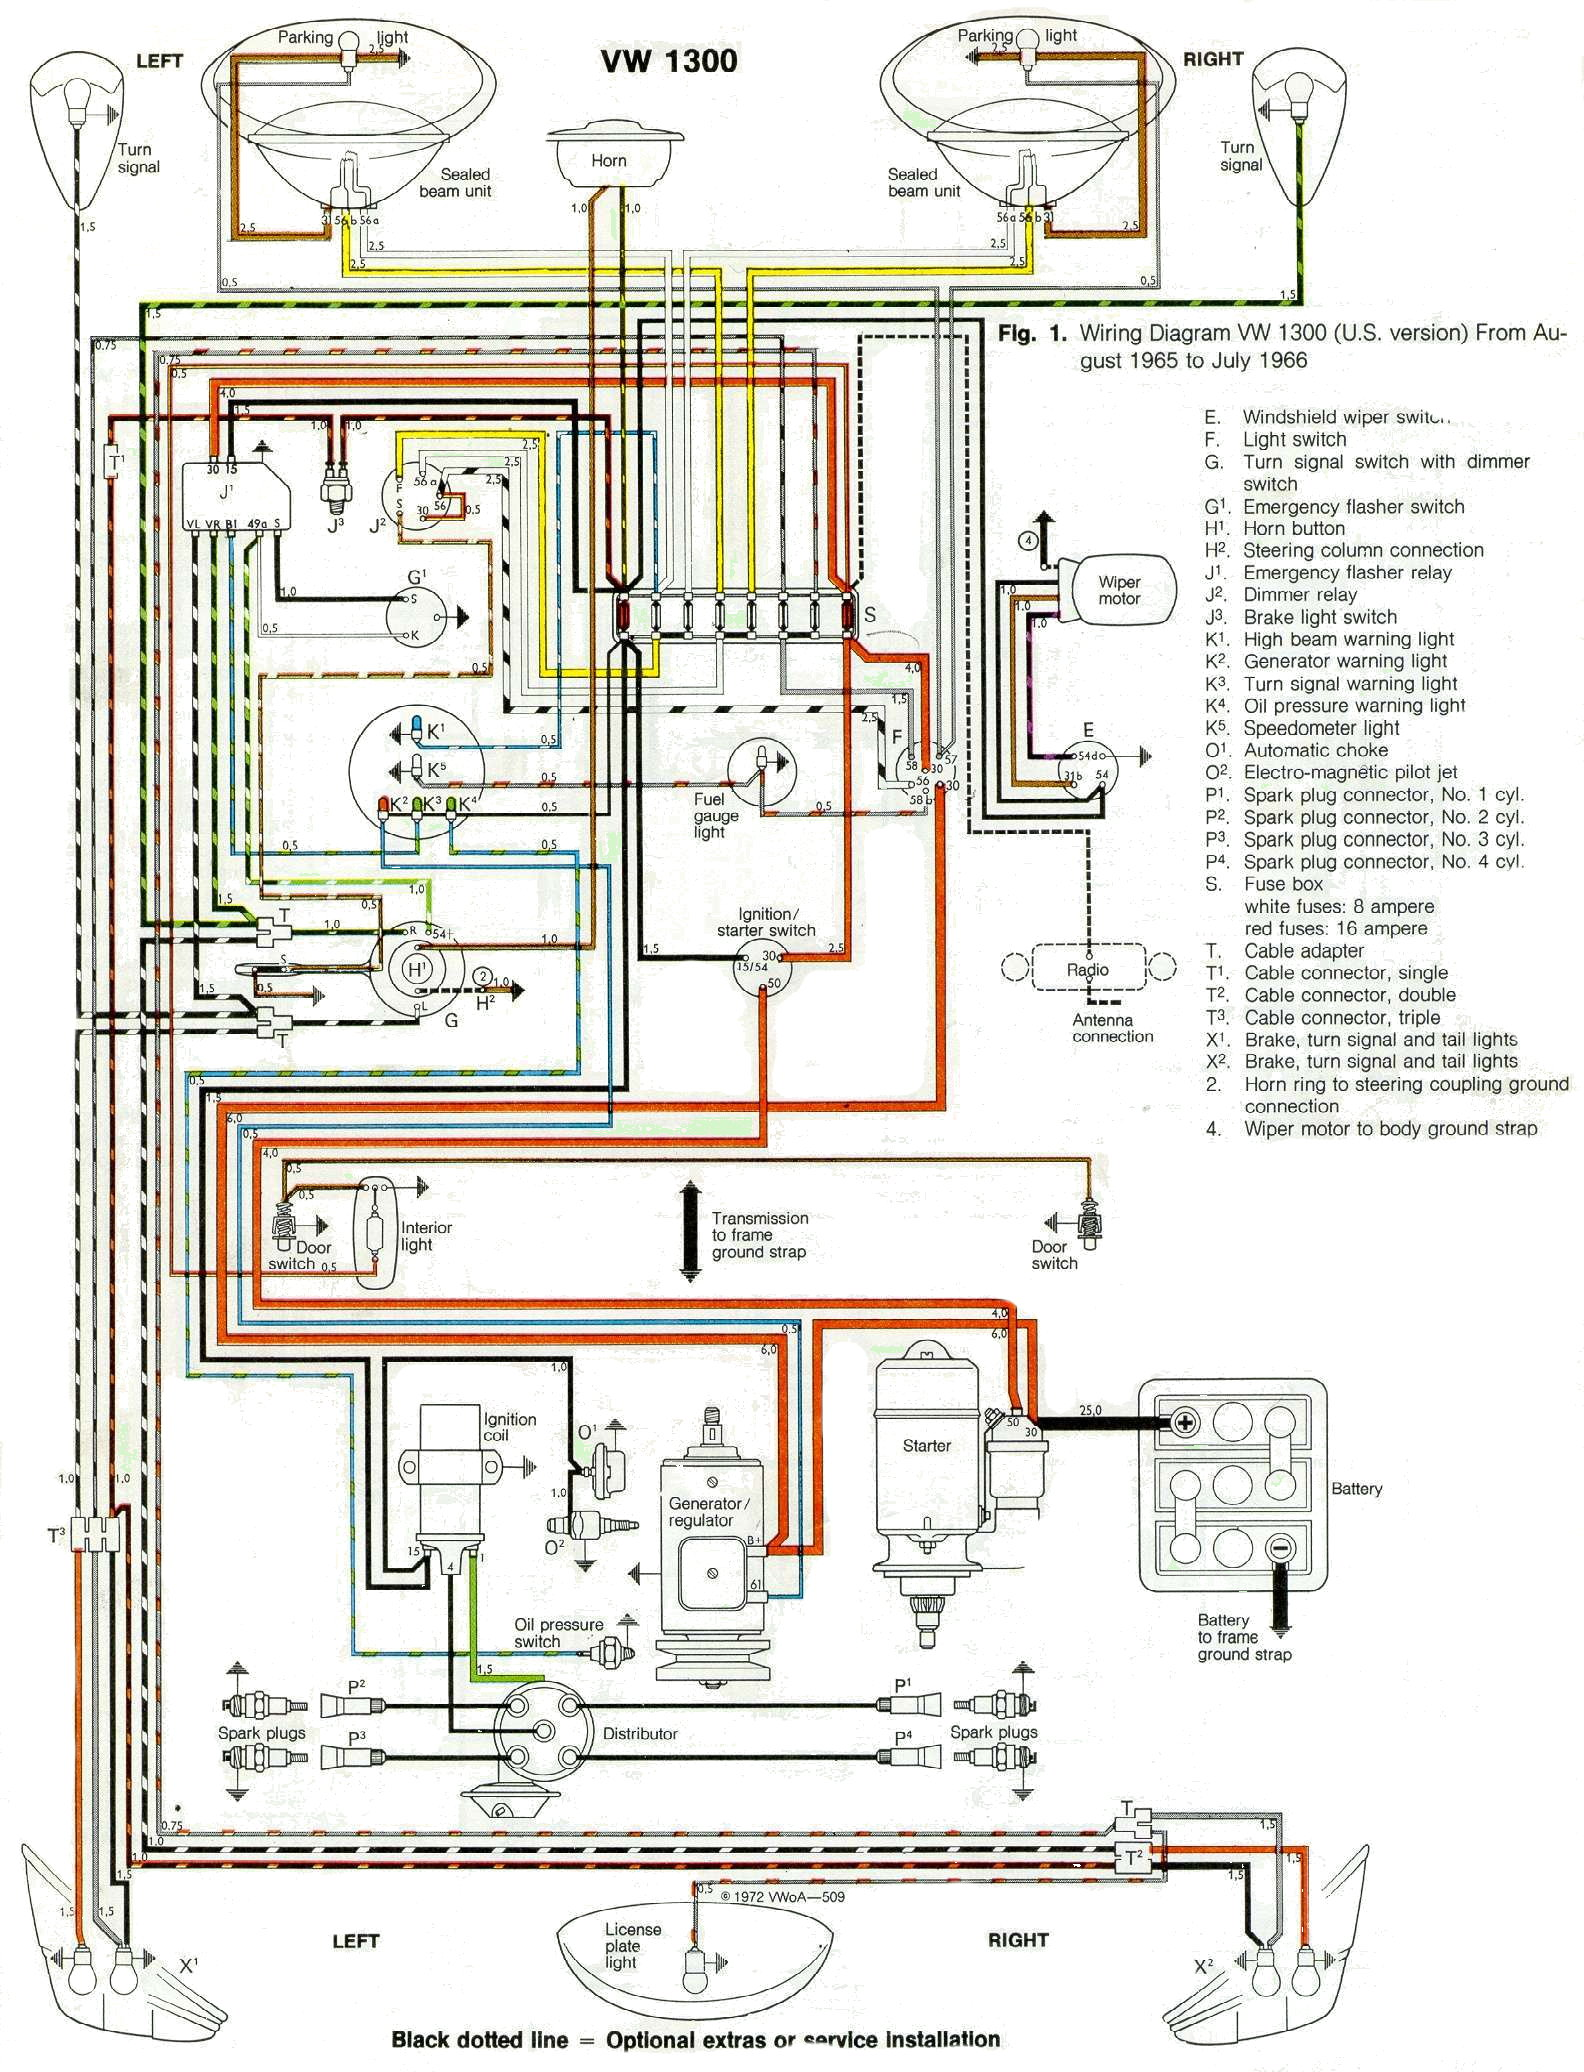 1966 wiring diagram rh 1966vwbeetle com vw beetle wiring diagram 1971 wiring diagram vw beetle 1969